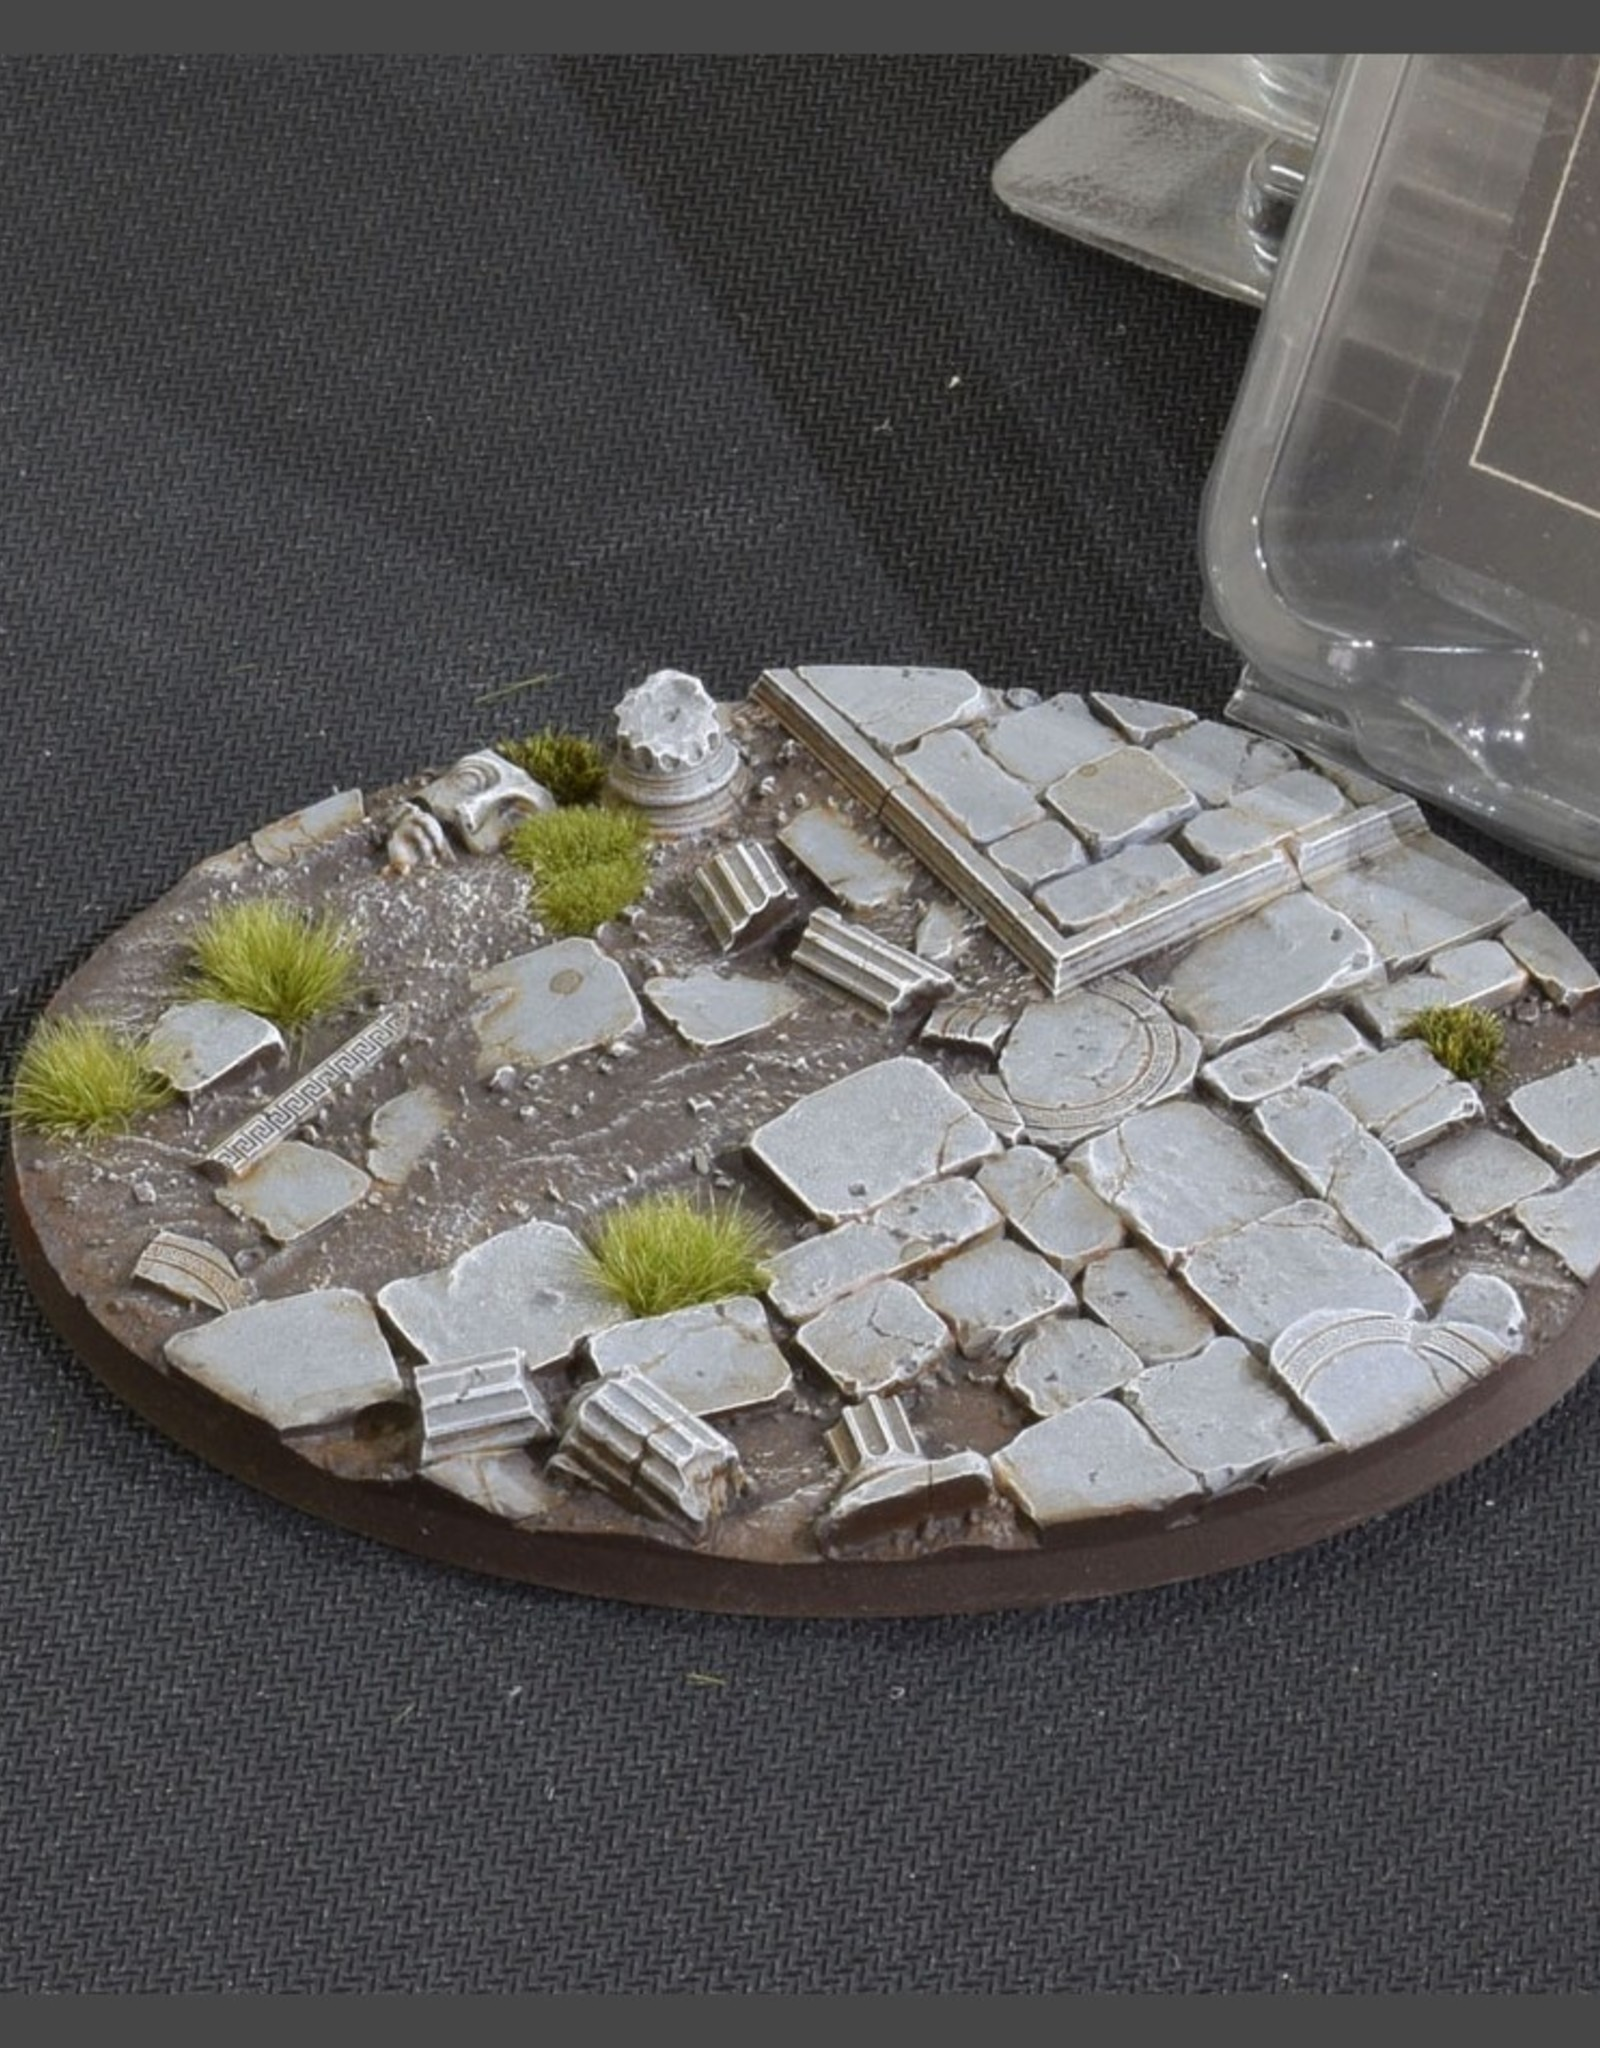 Gamers Grass Temple Bases Pre-Painted (1x 120mm Oval)